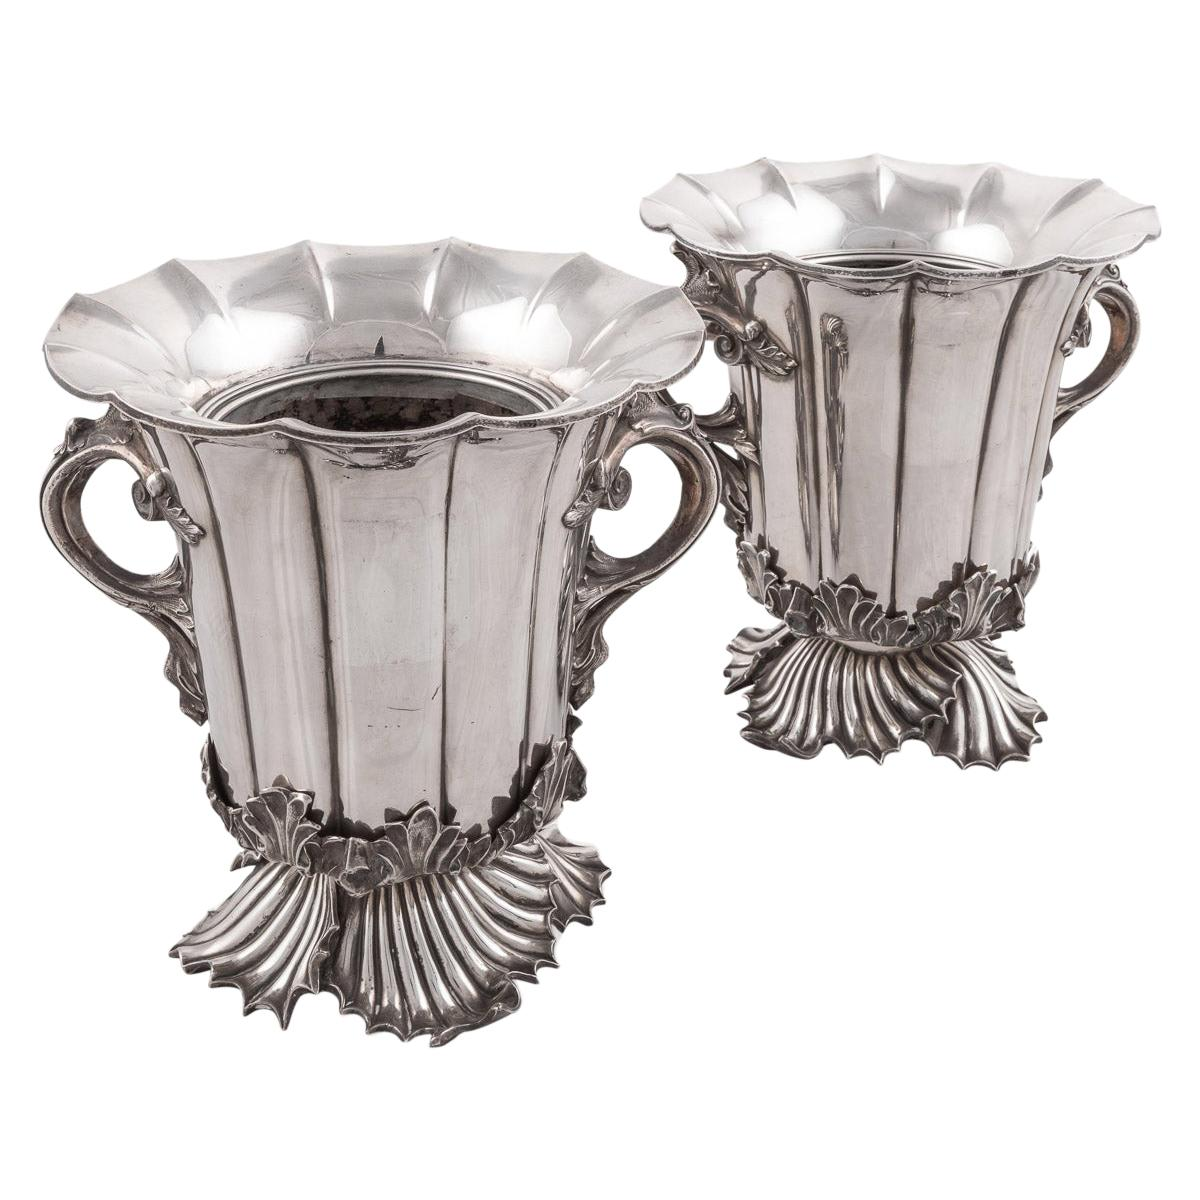 19th Century Pair of Old Sheffield Plated Wine Coolers, Sissons & Co, c.1840